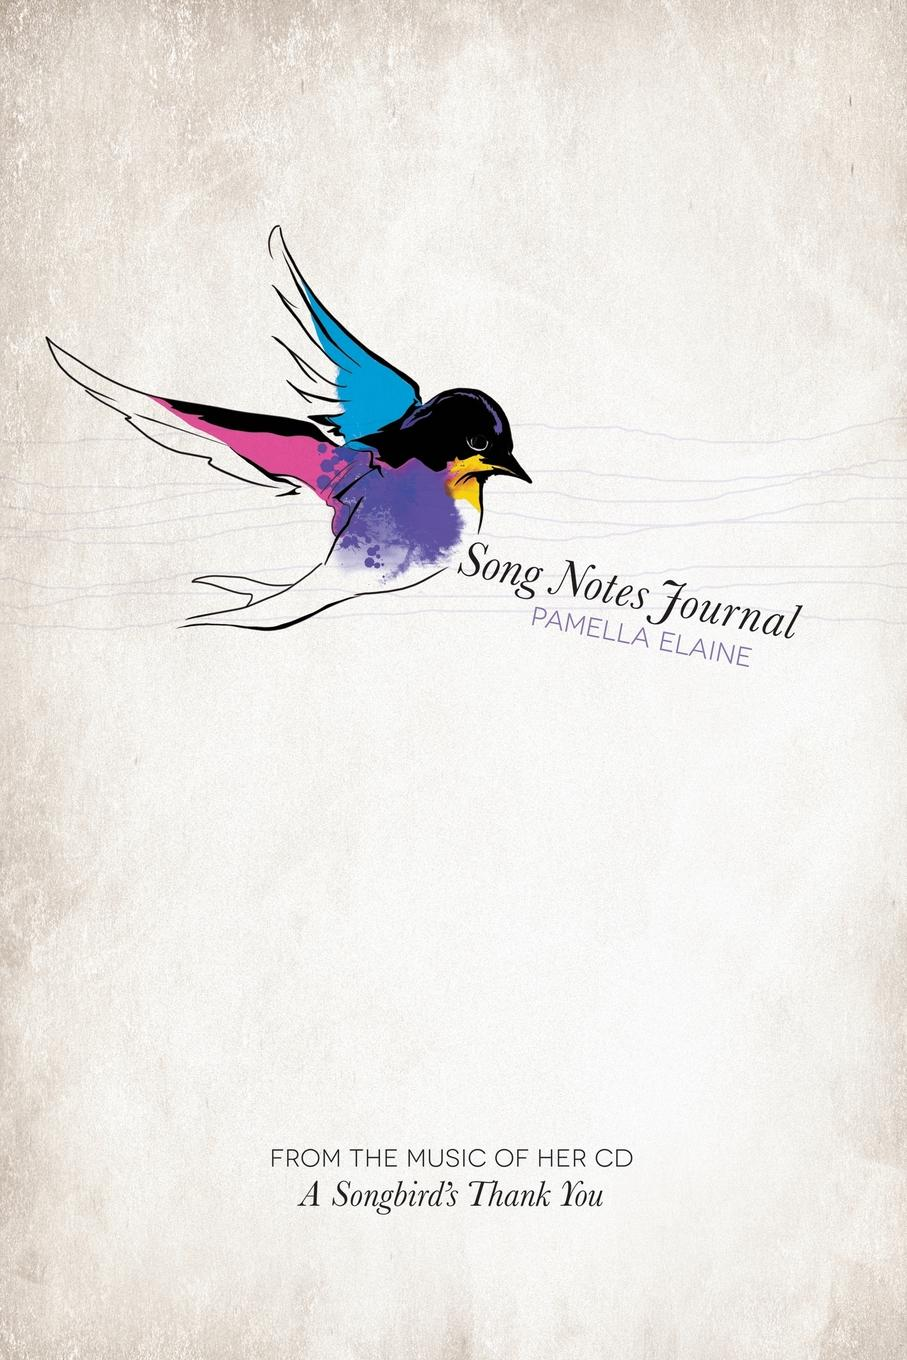 PAMELLA ELAINE SONG NOTES JOURNAL 100 things to do on a journey